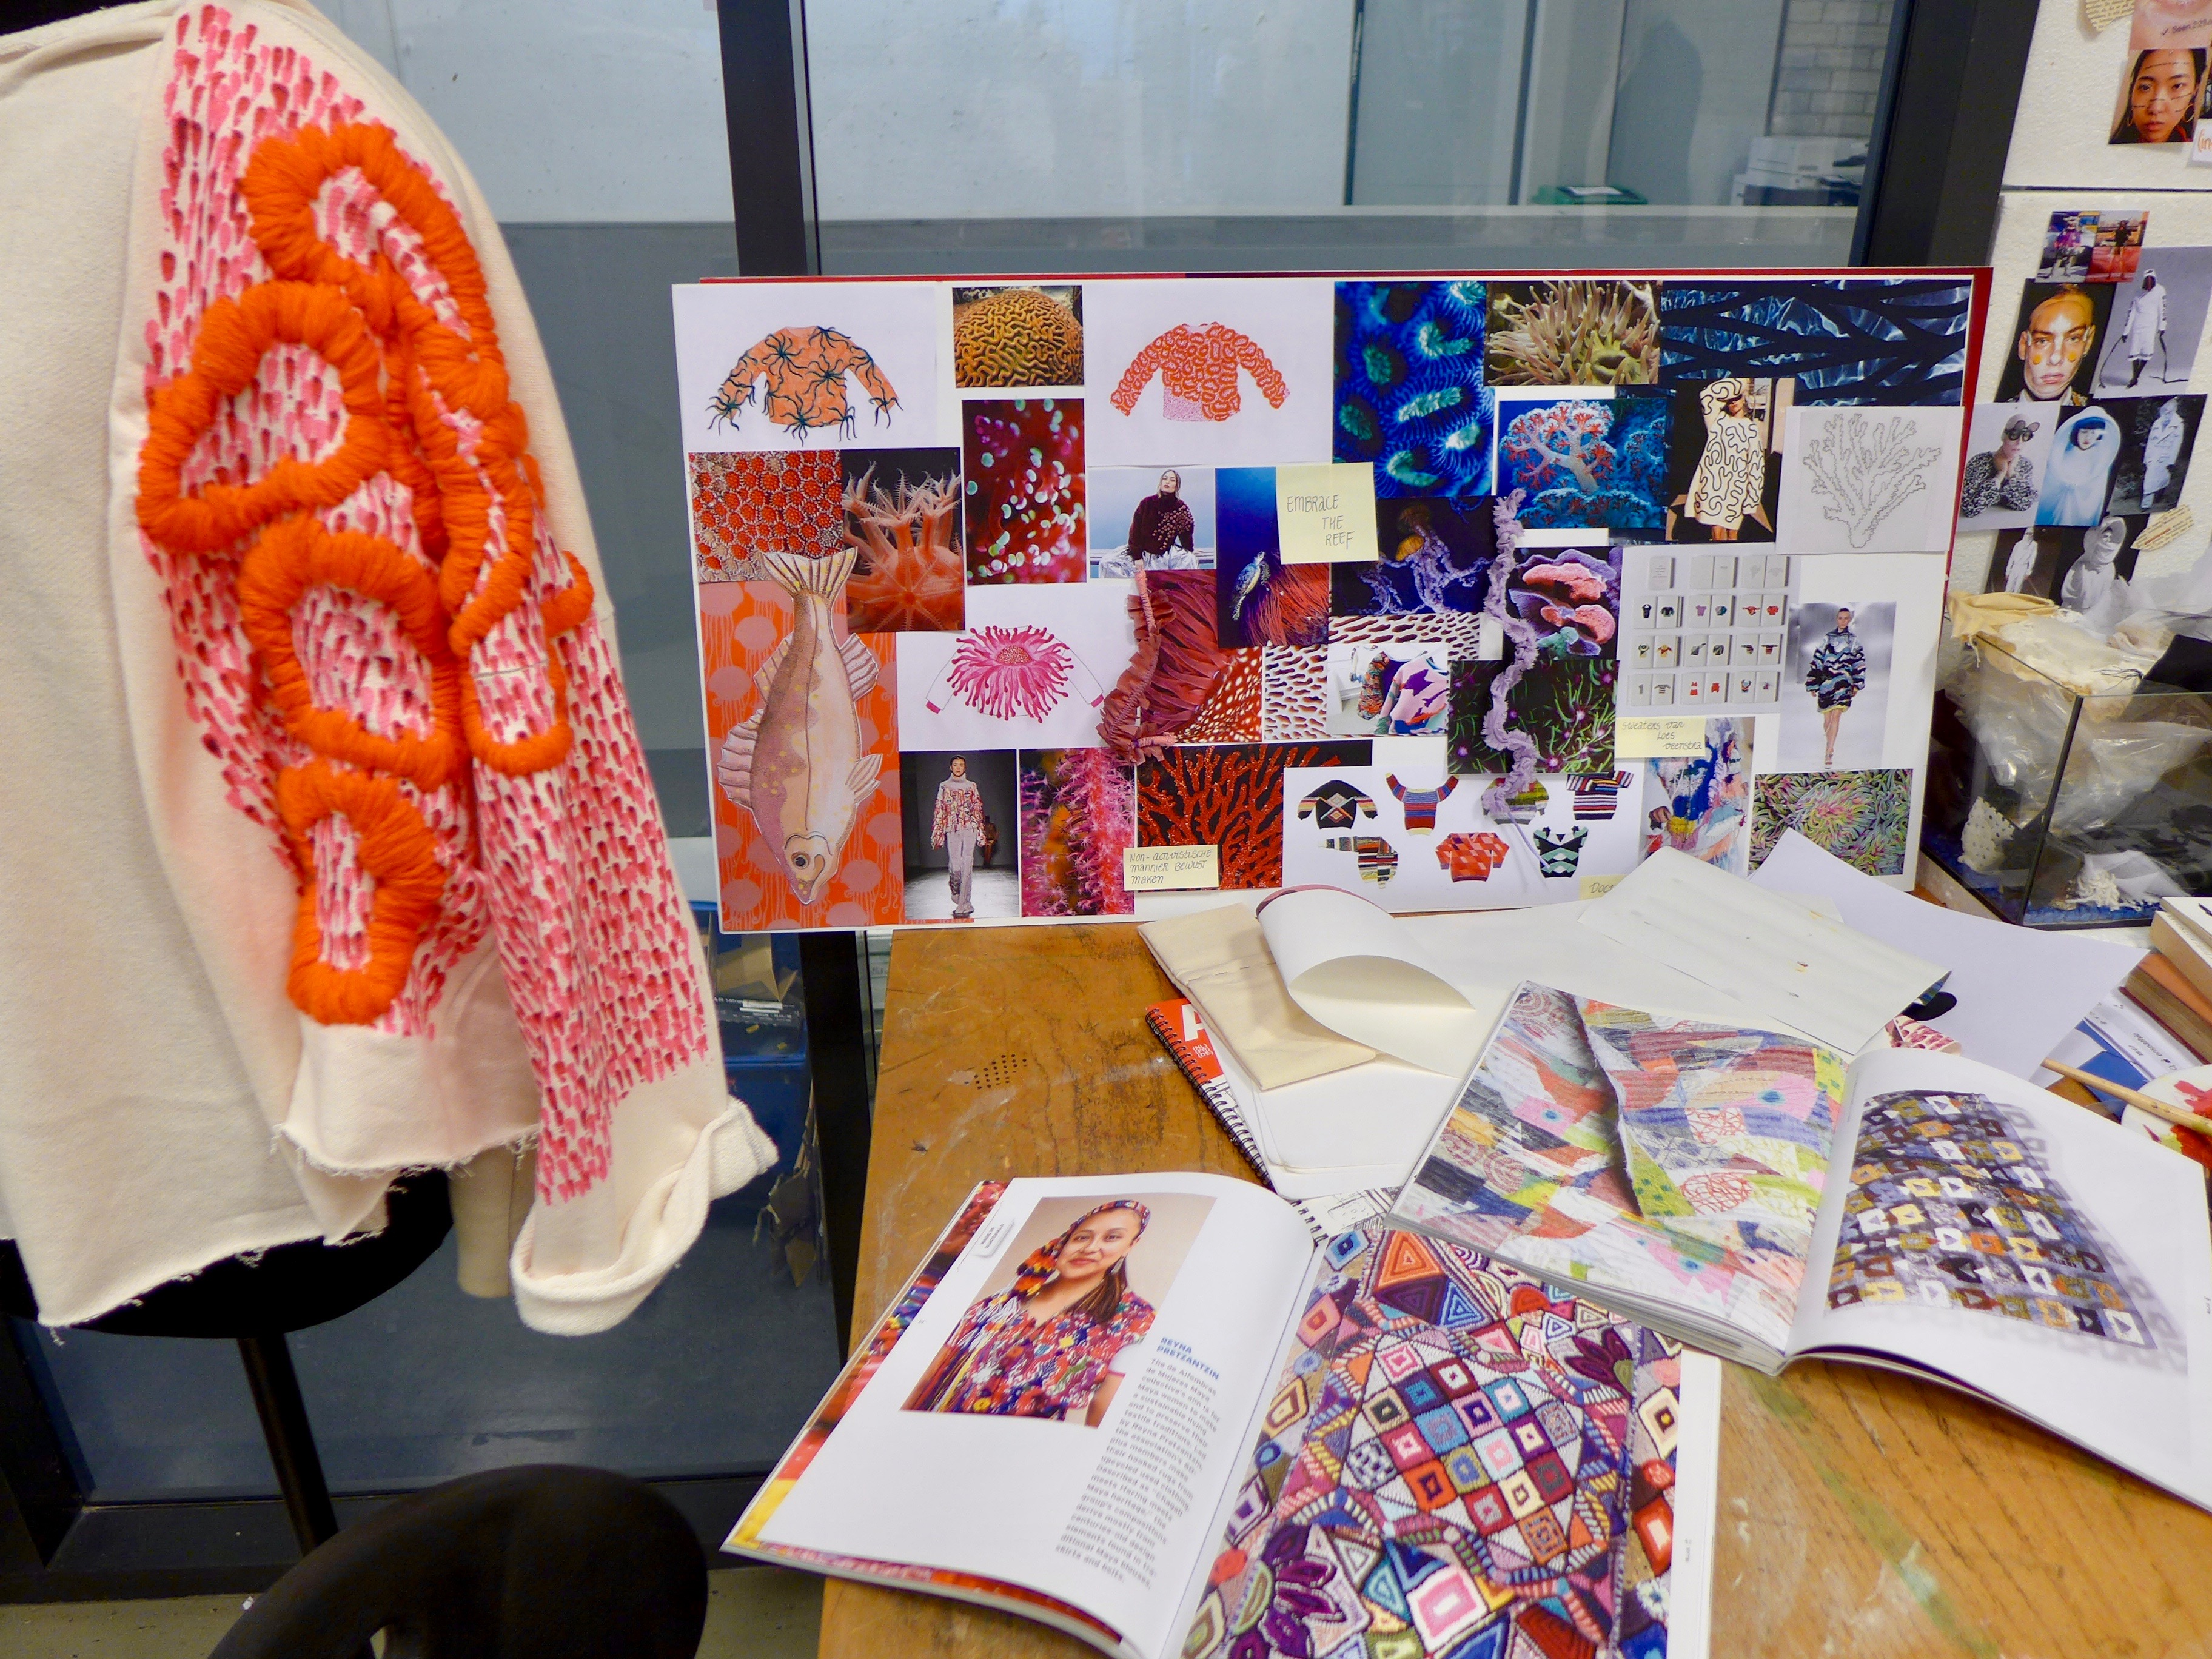 Vision on Fashion / HKU Fashion Design